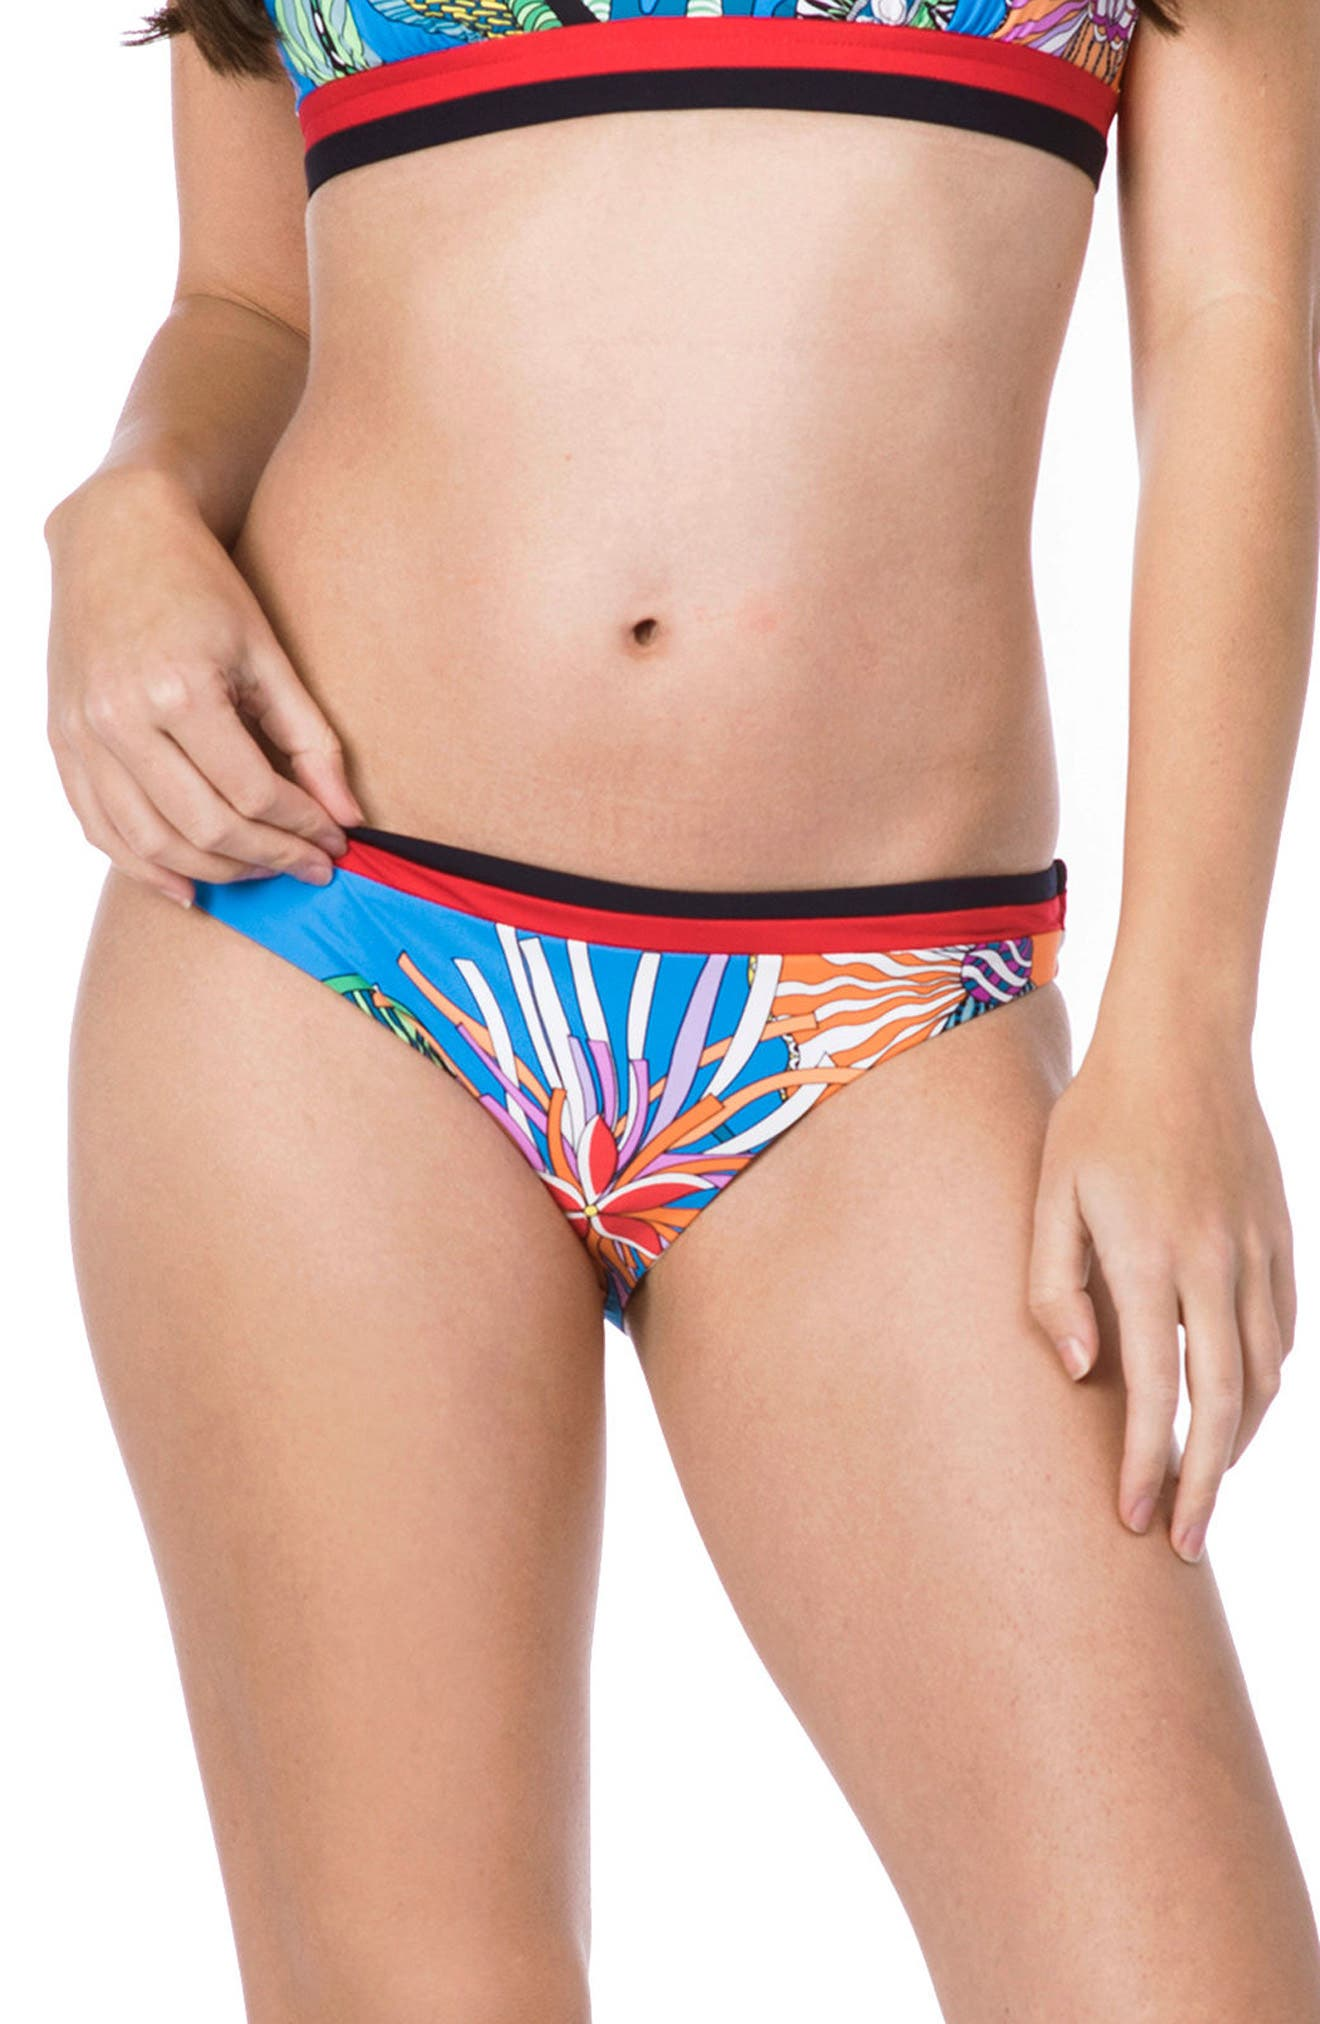 Tahiti Tropical Hipster Bikini Bottoms,                             Main thumbnail 1, color,                             BLUE MULTI